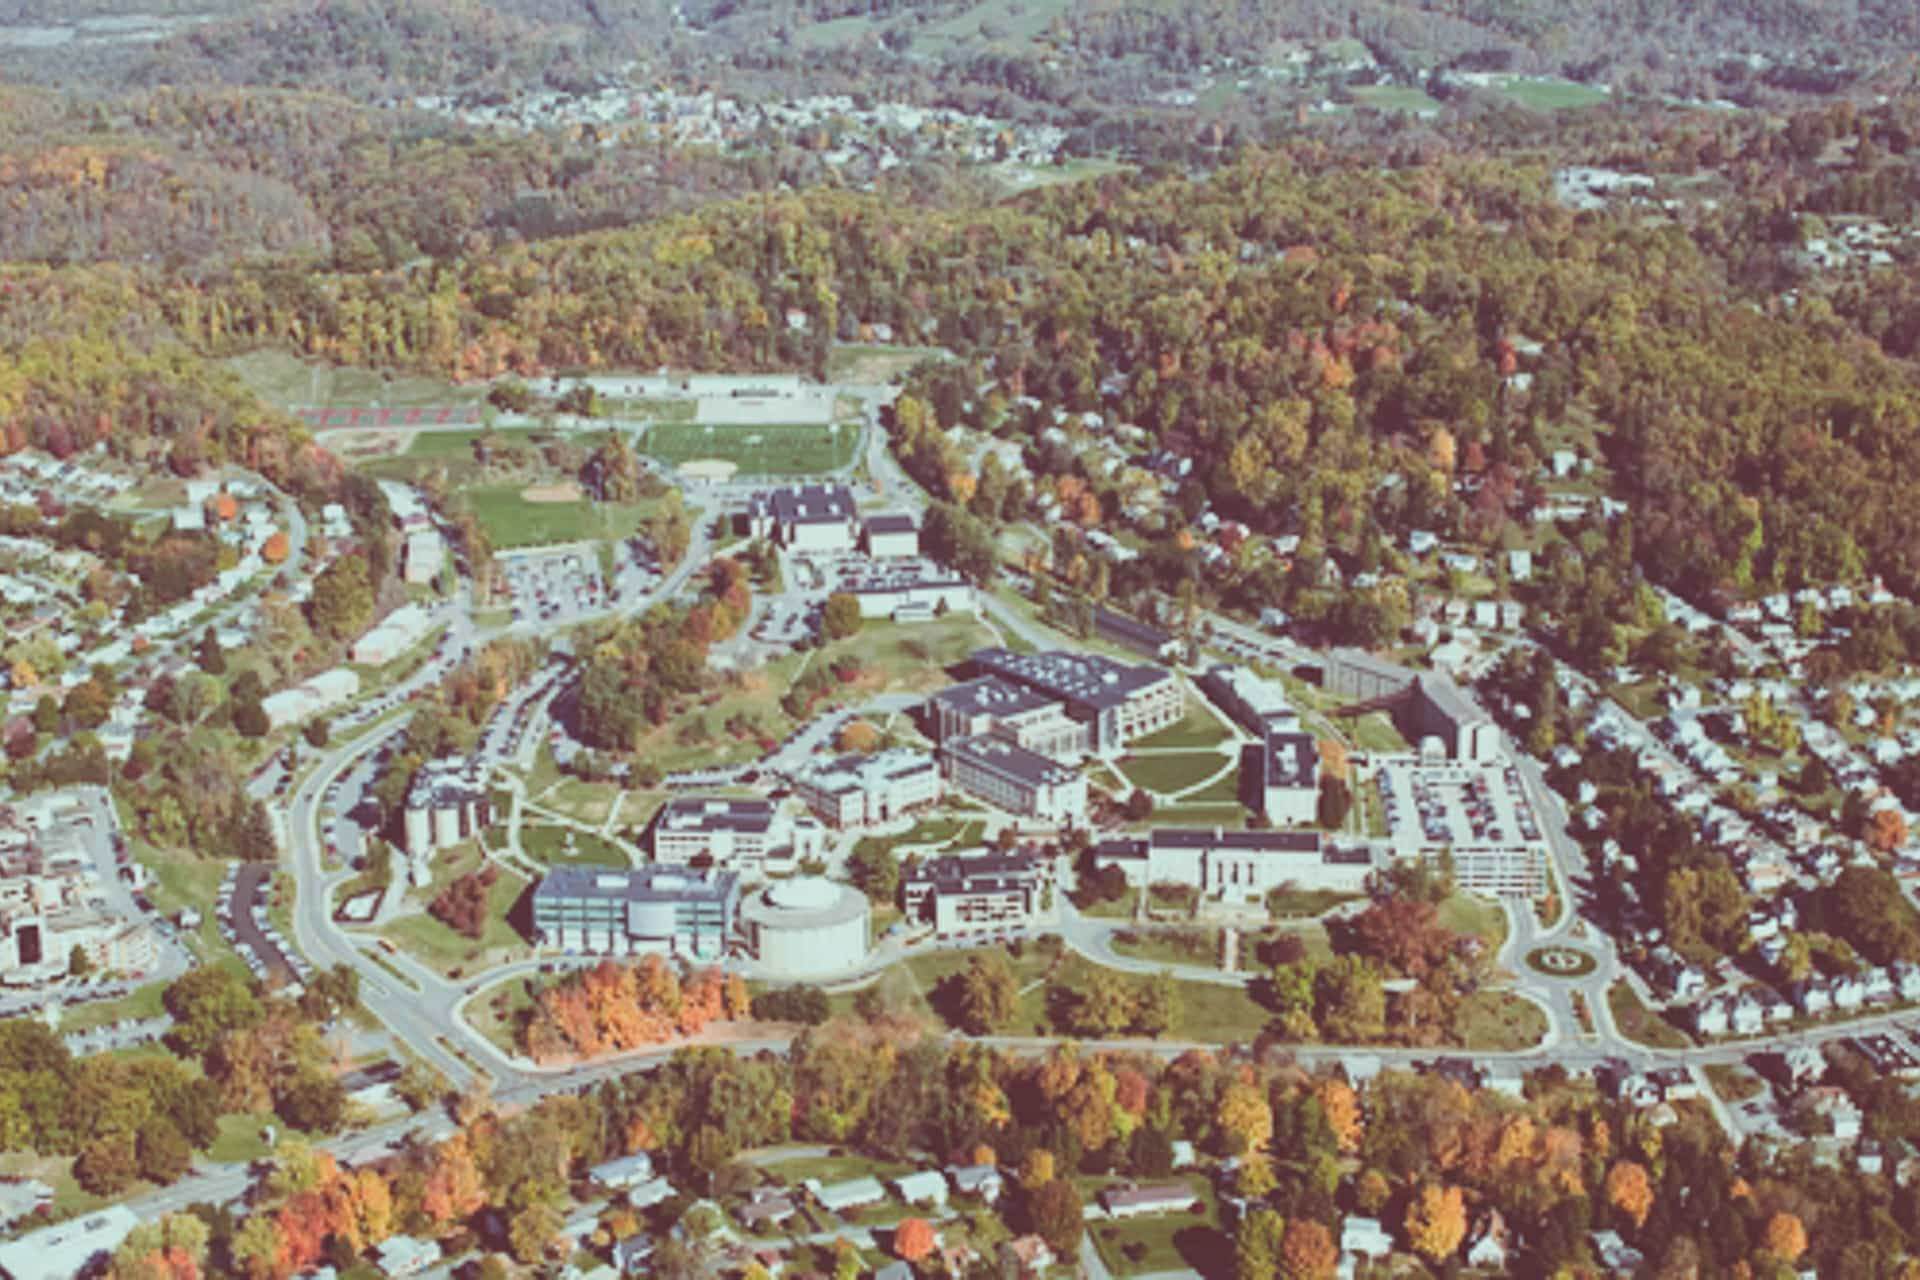 Fairmont State census data demonstrates strong enrollment growth